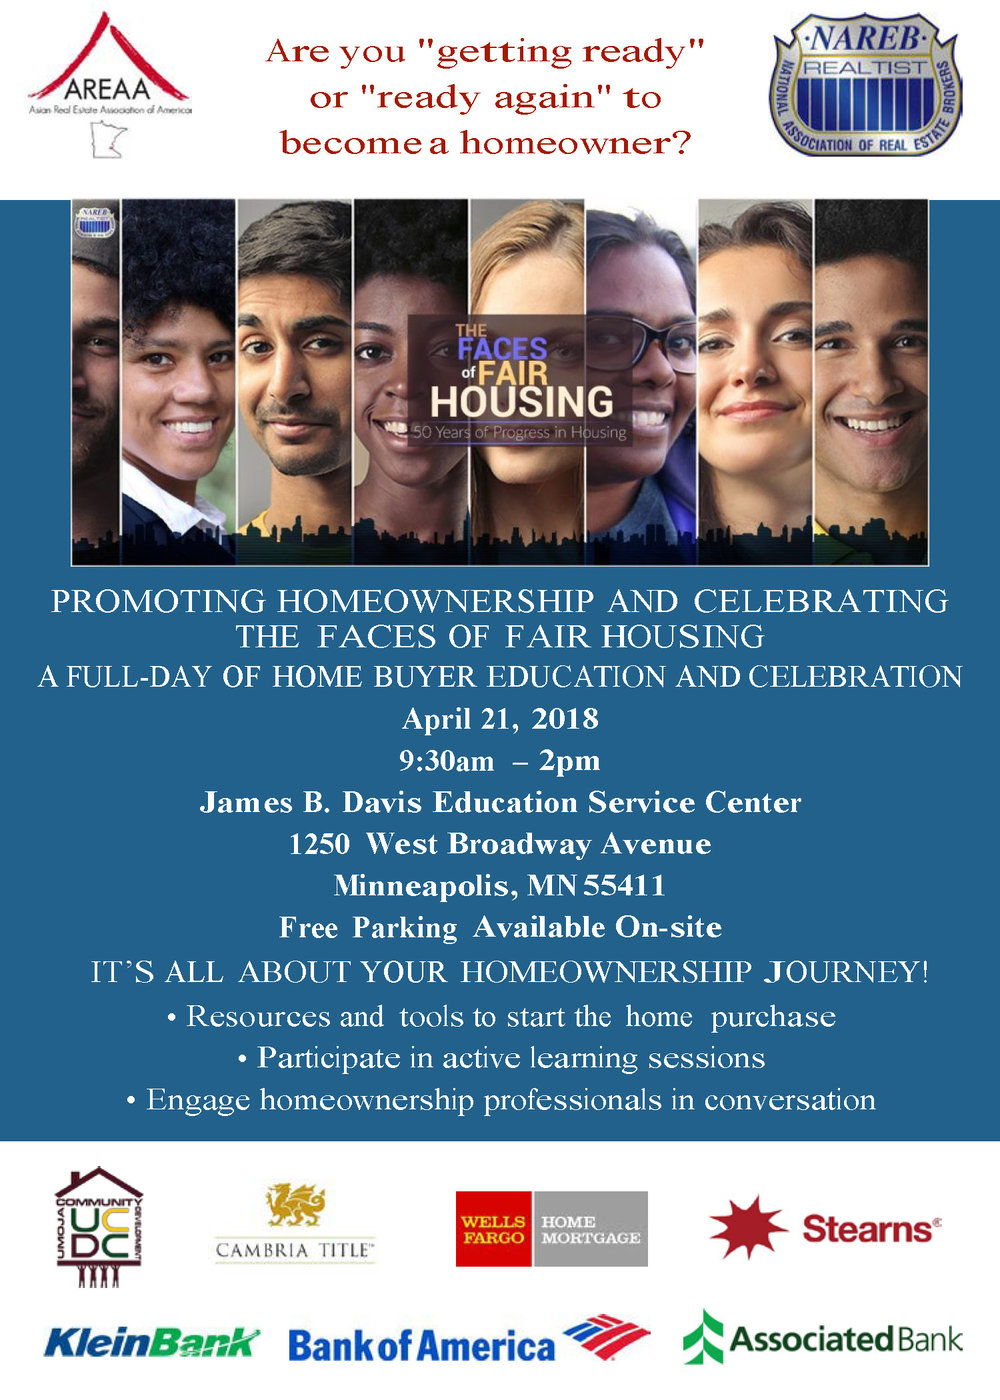 You are Invited_Homebuyer Event and Celebrating the Faces of Fair Housing_A..._Page_1.jpg